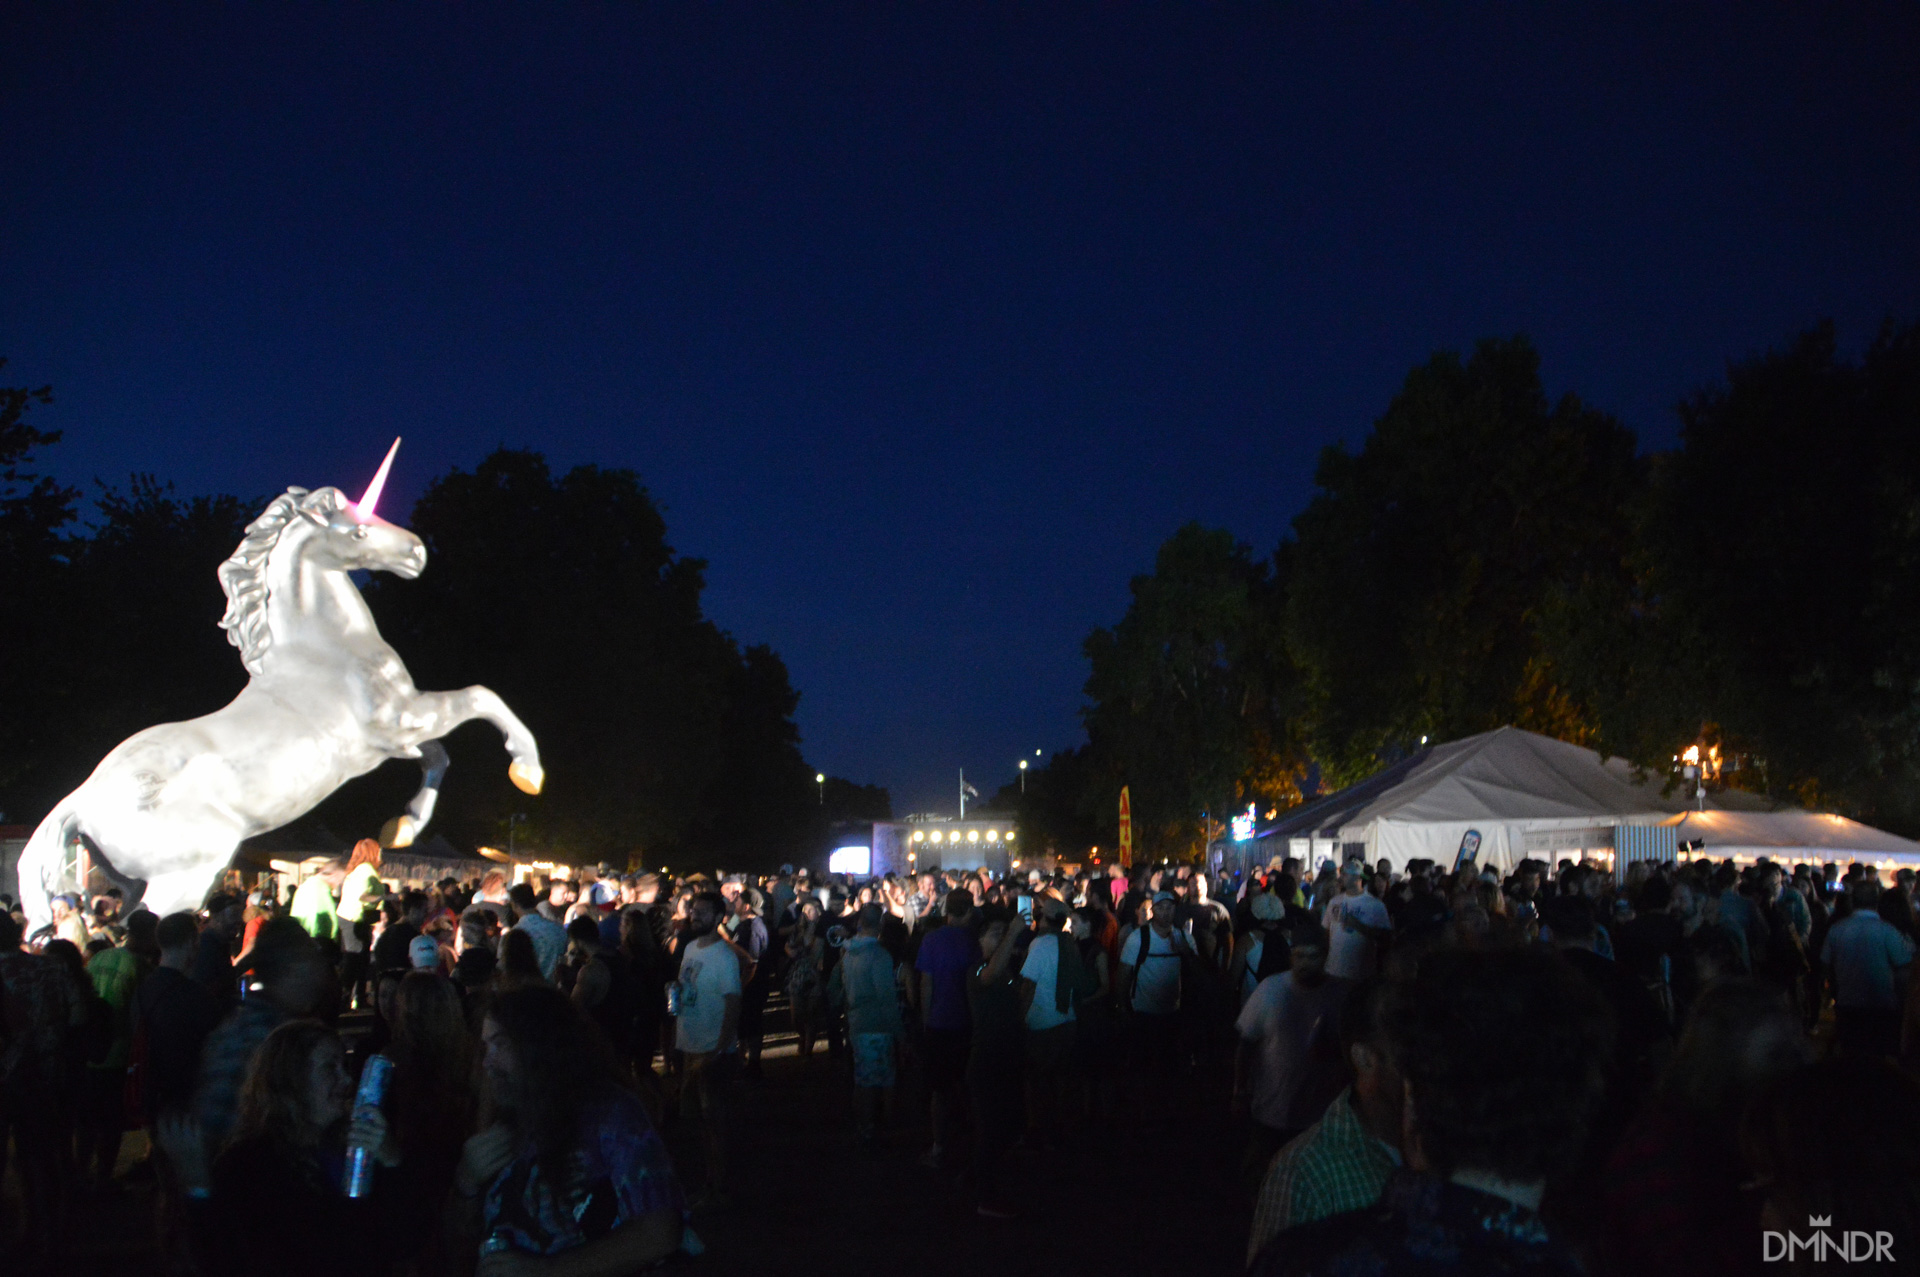 Pabst Unicorn and festival crowd nightshot